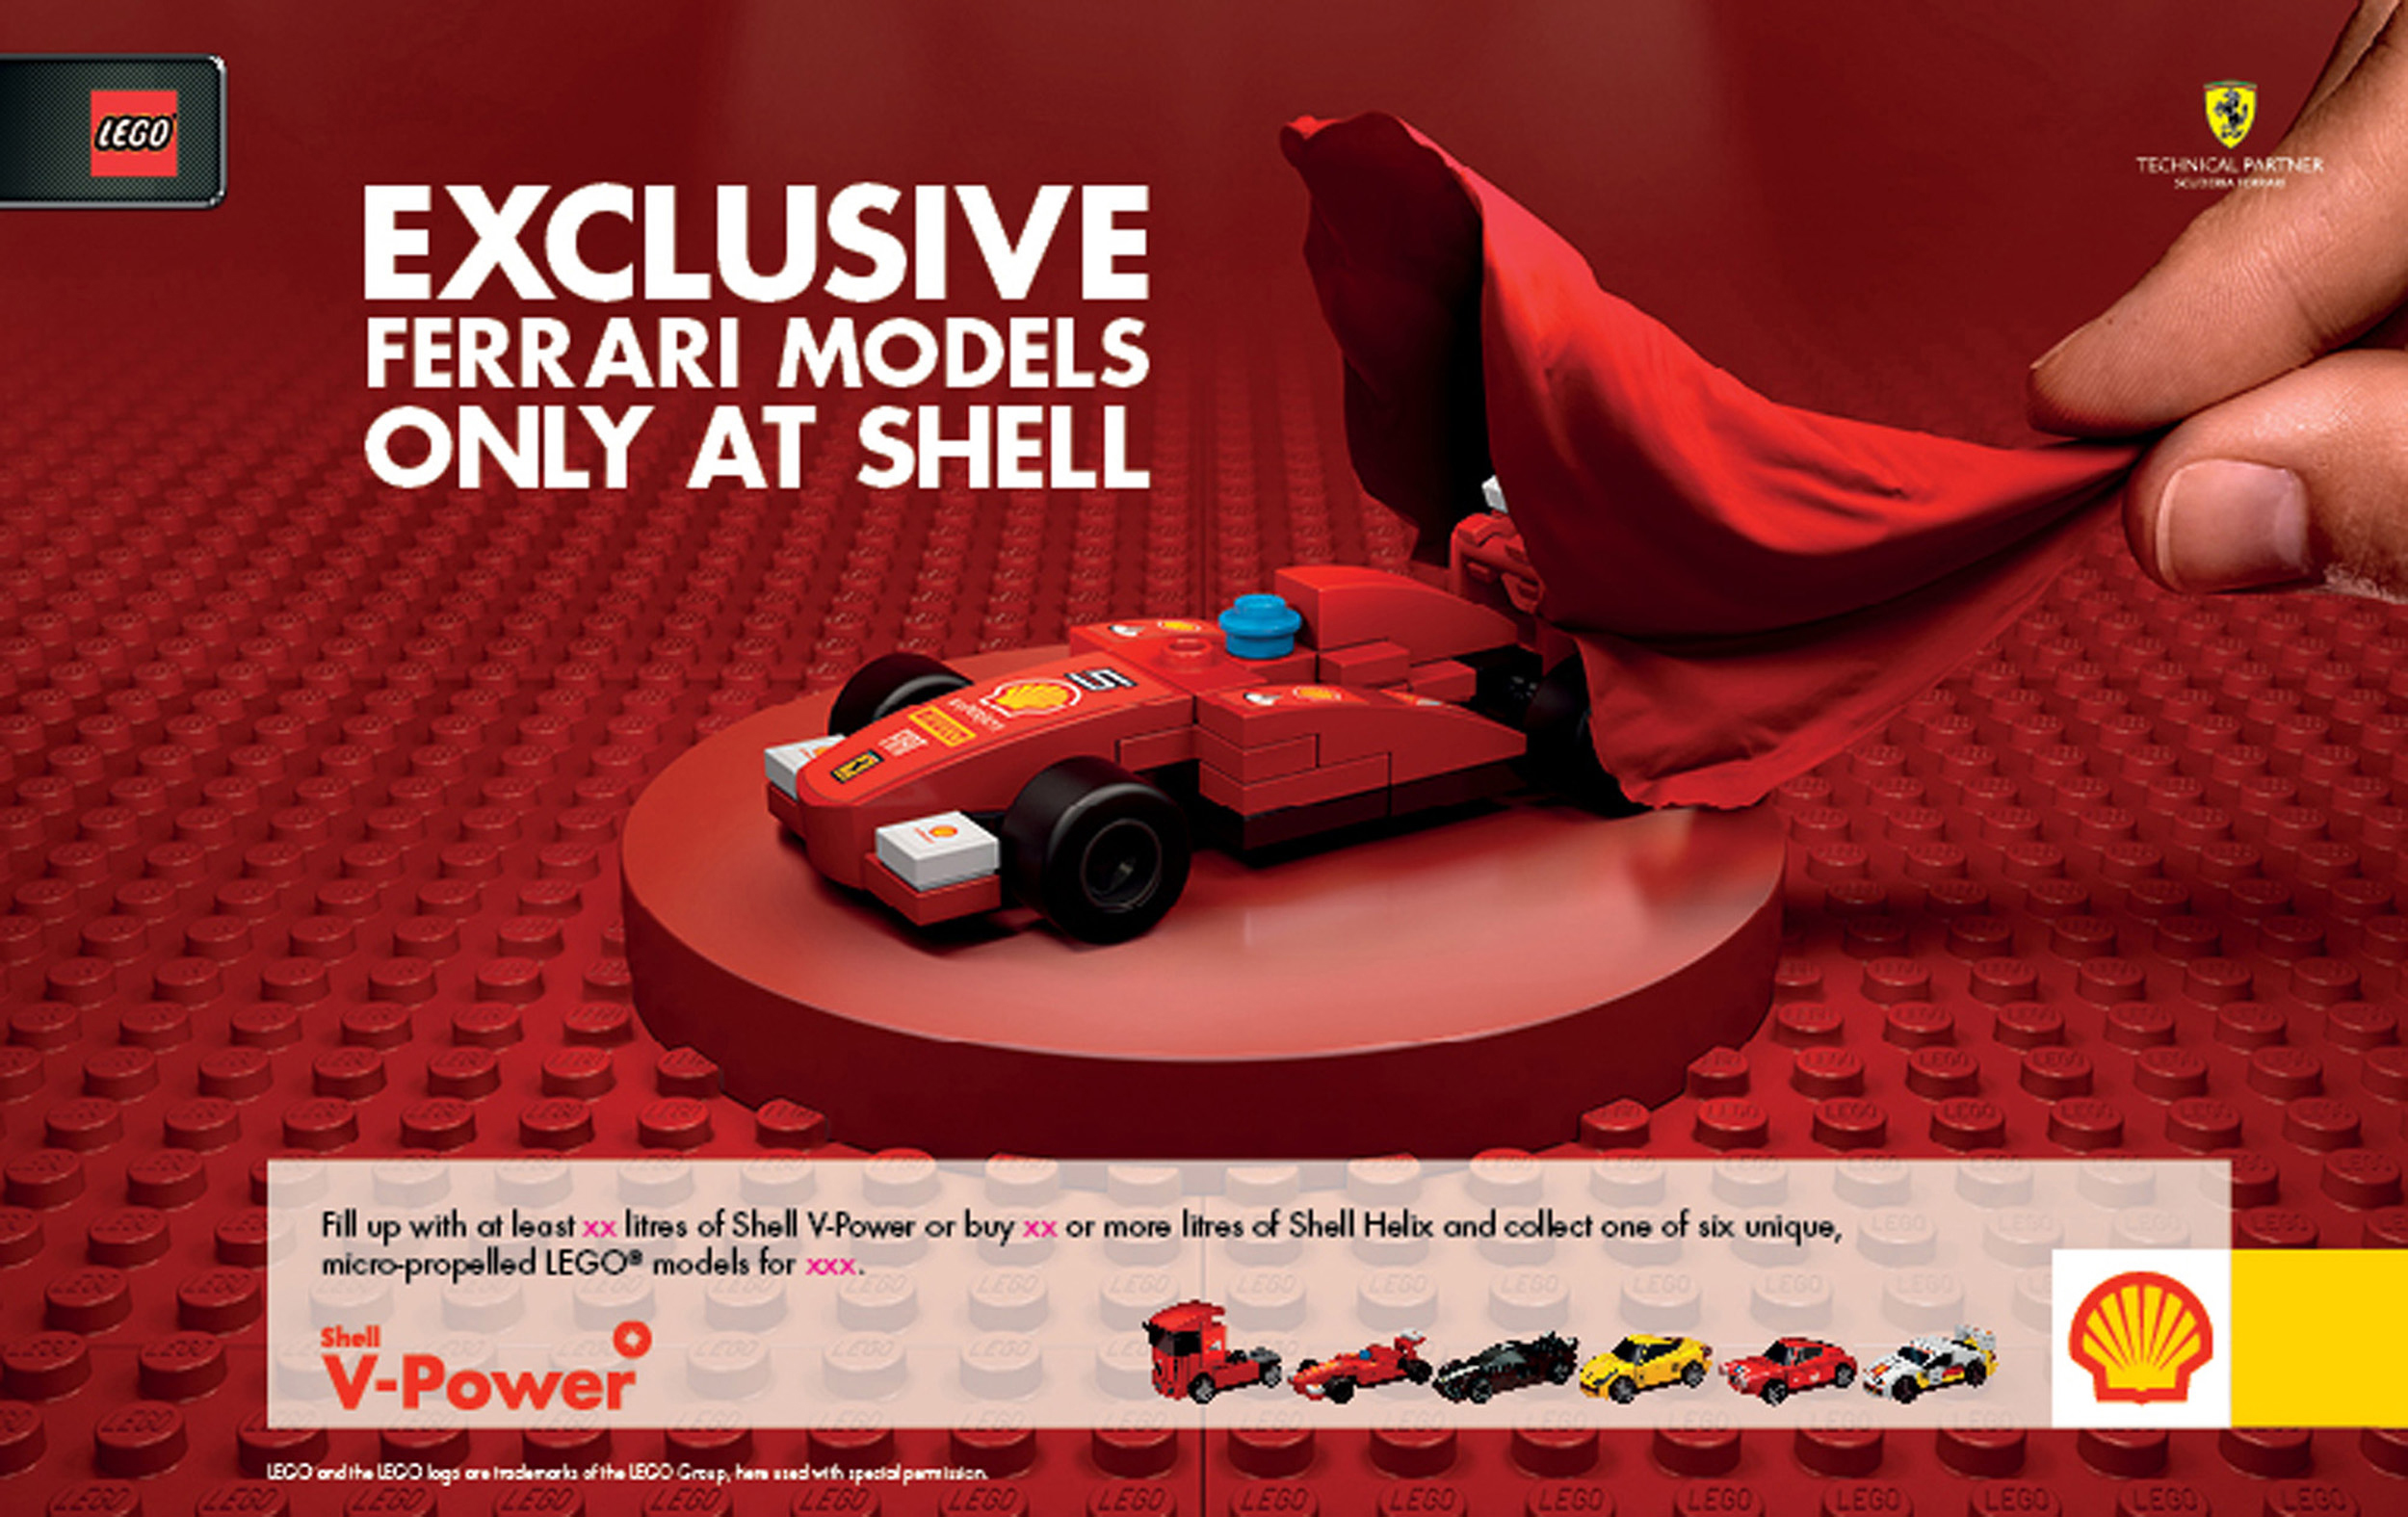 214189-Shell-Lego-Ferrari-Toolkit_Half-Page-Press-270x170_Part2_V2